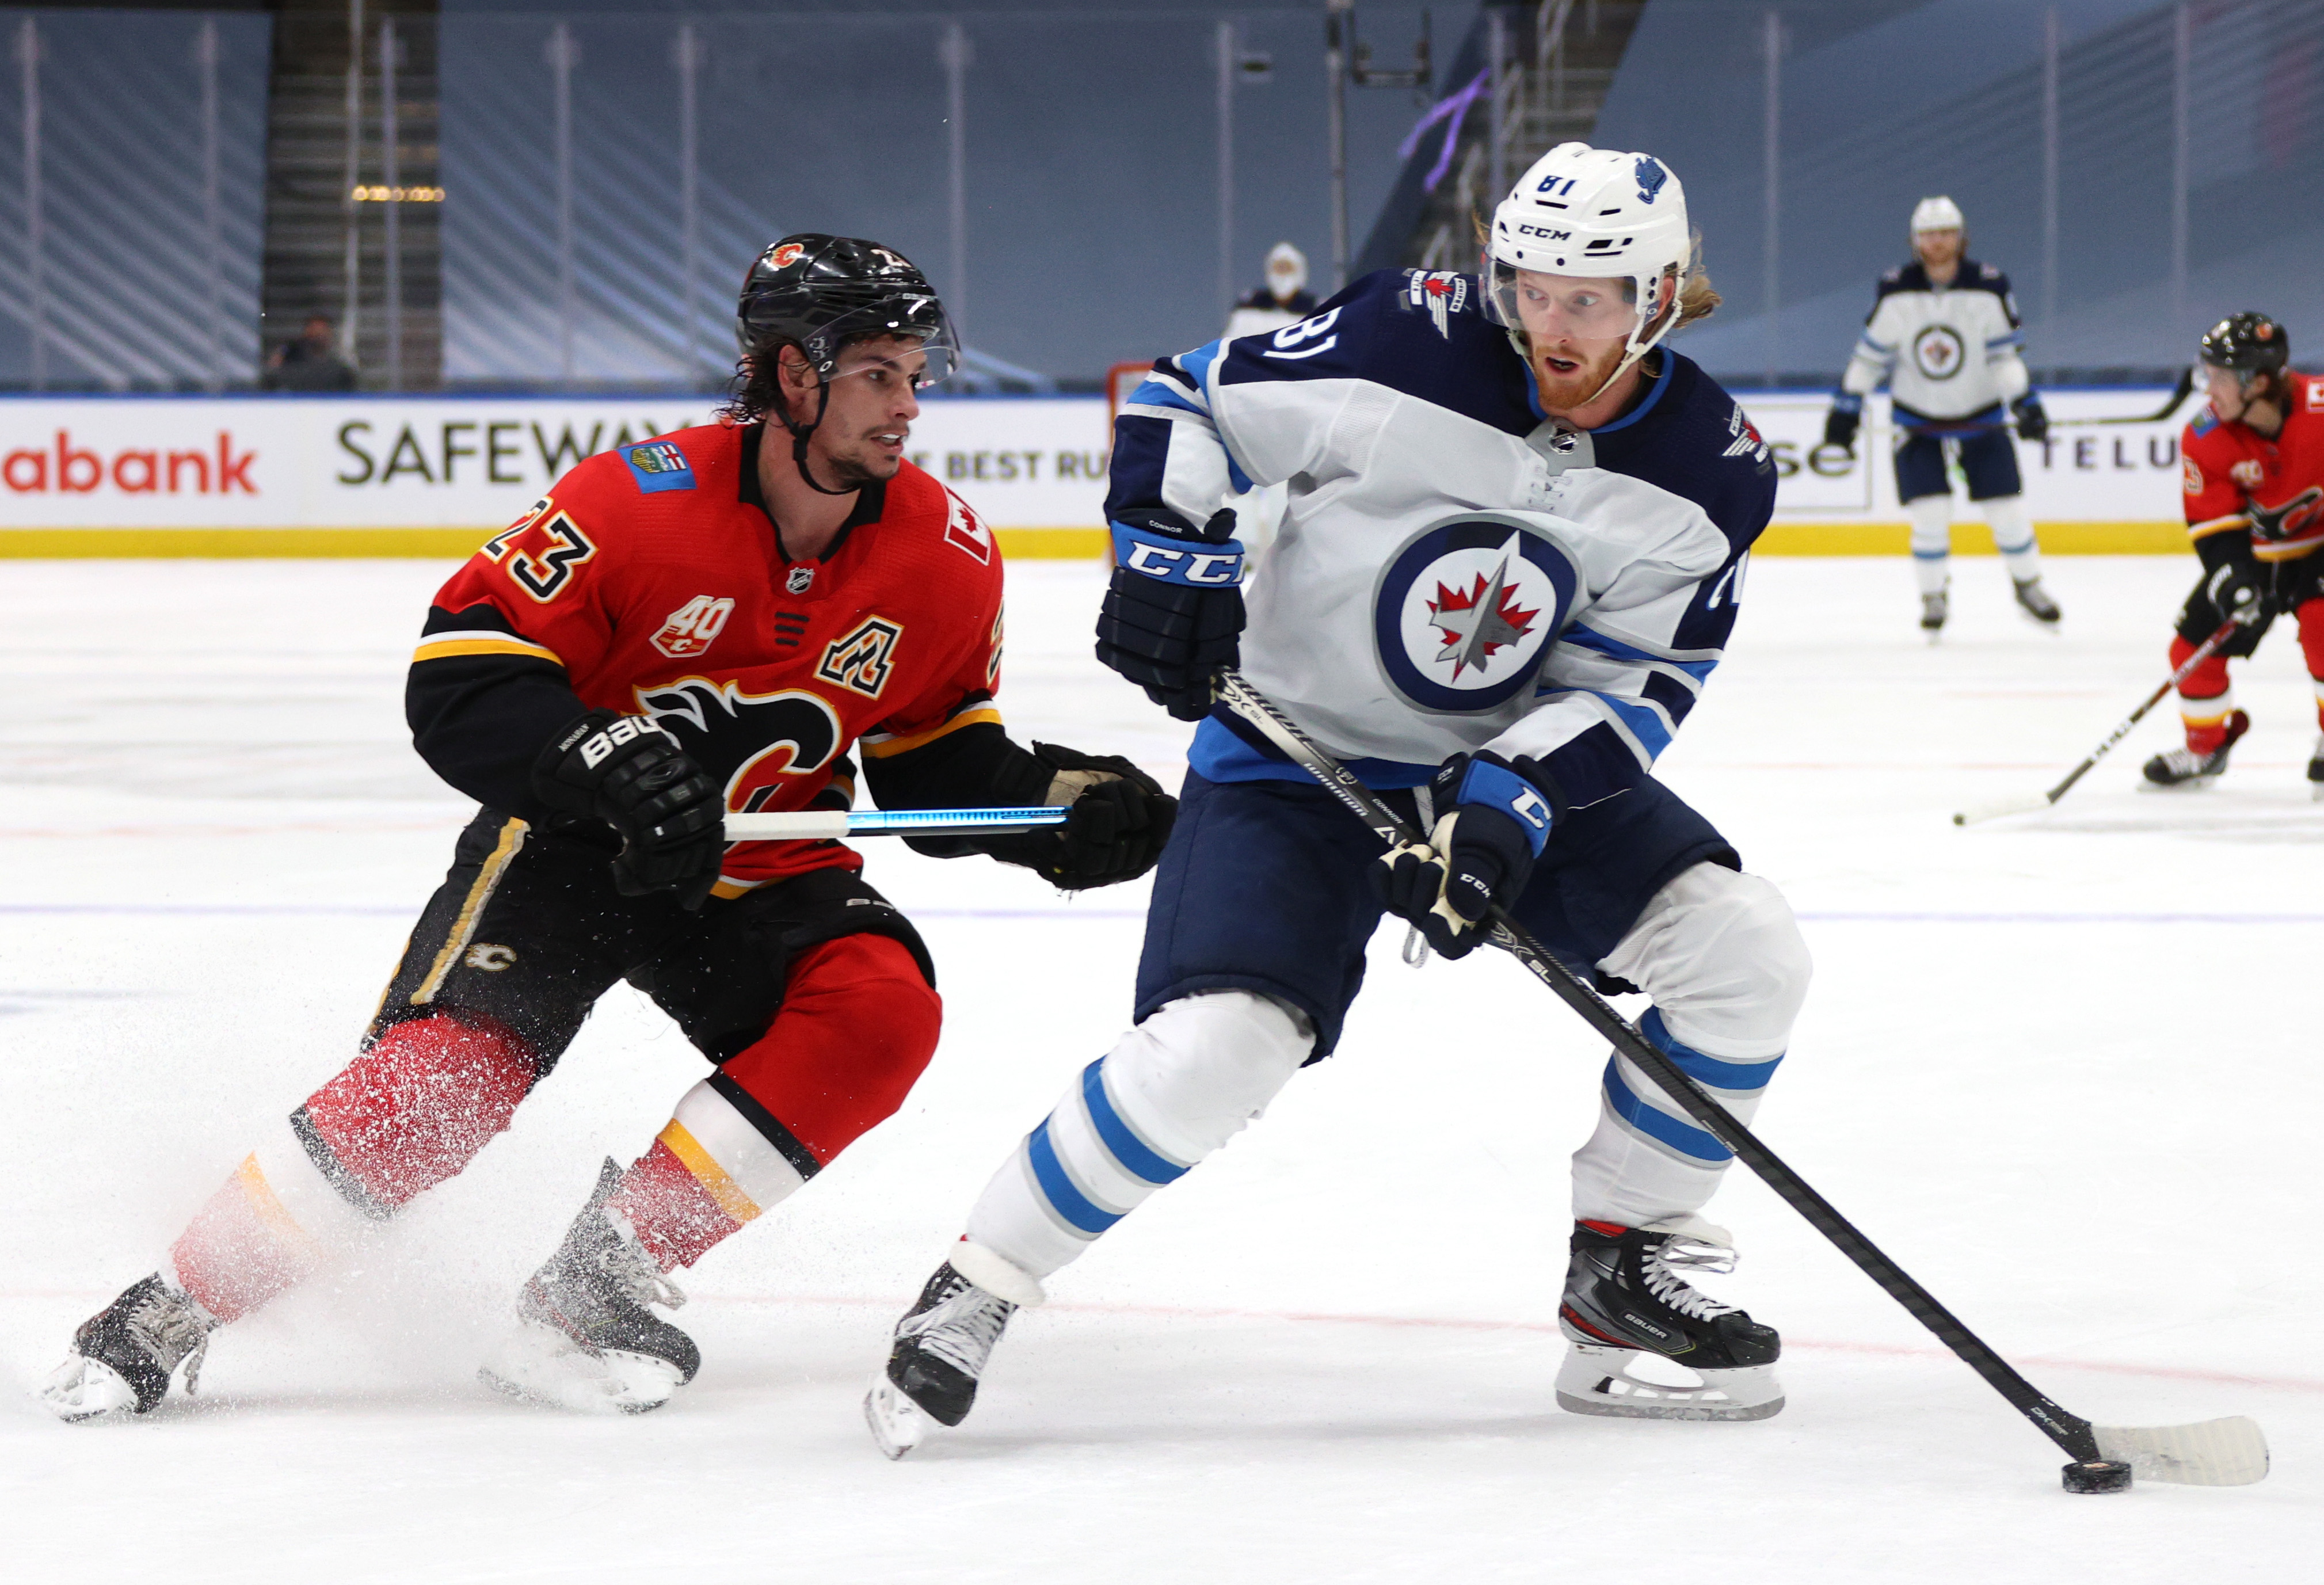 Winnipeg Jets v Calgary Flames - Game Two